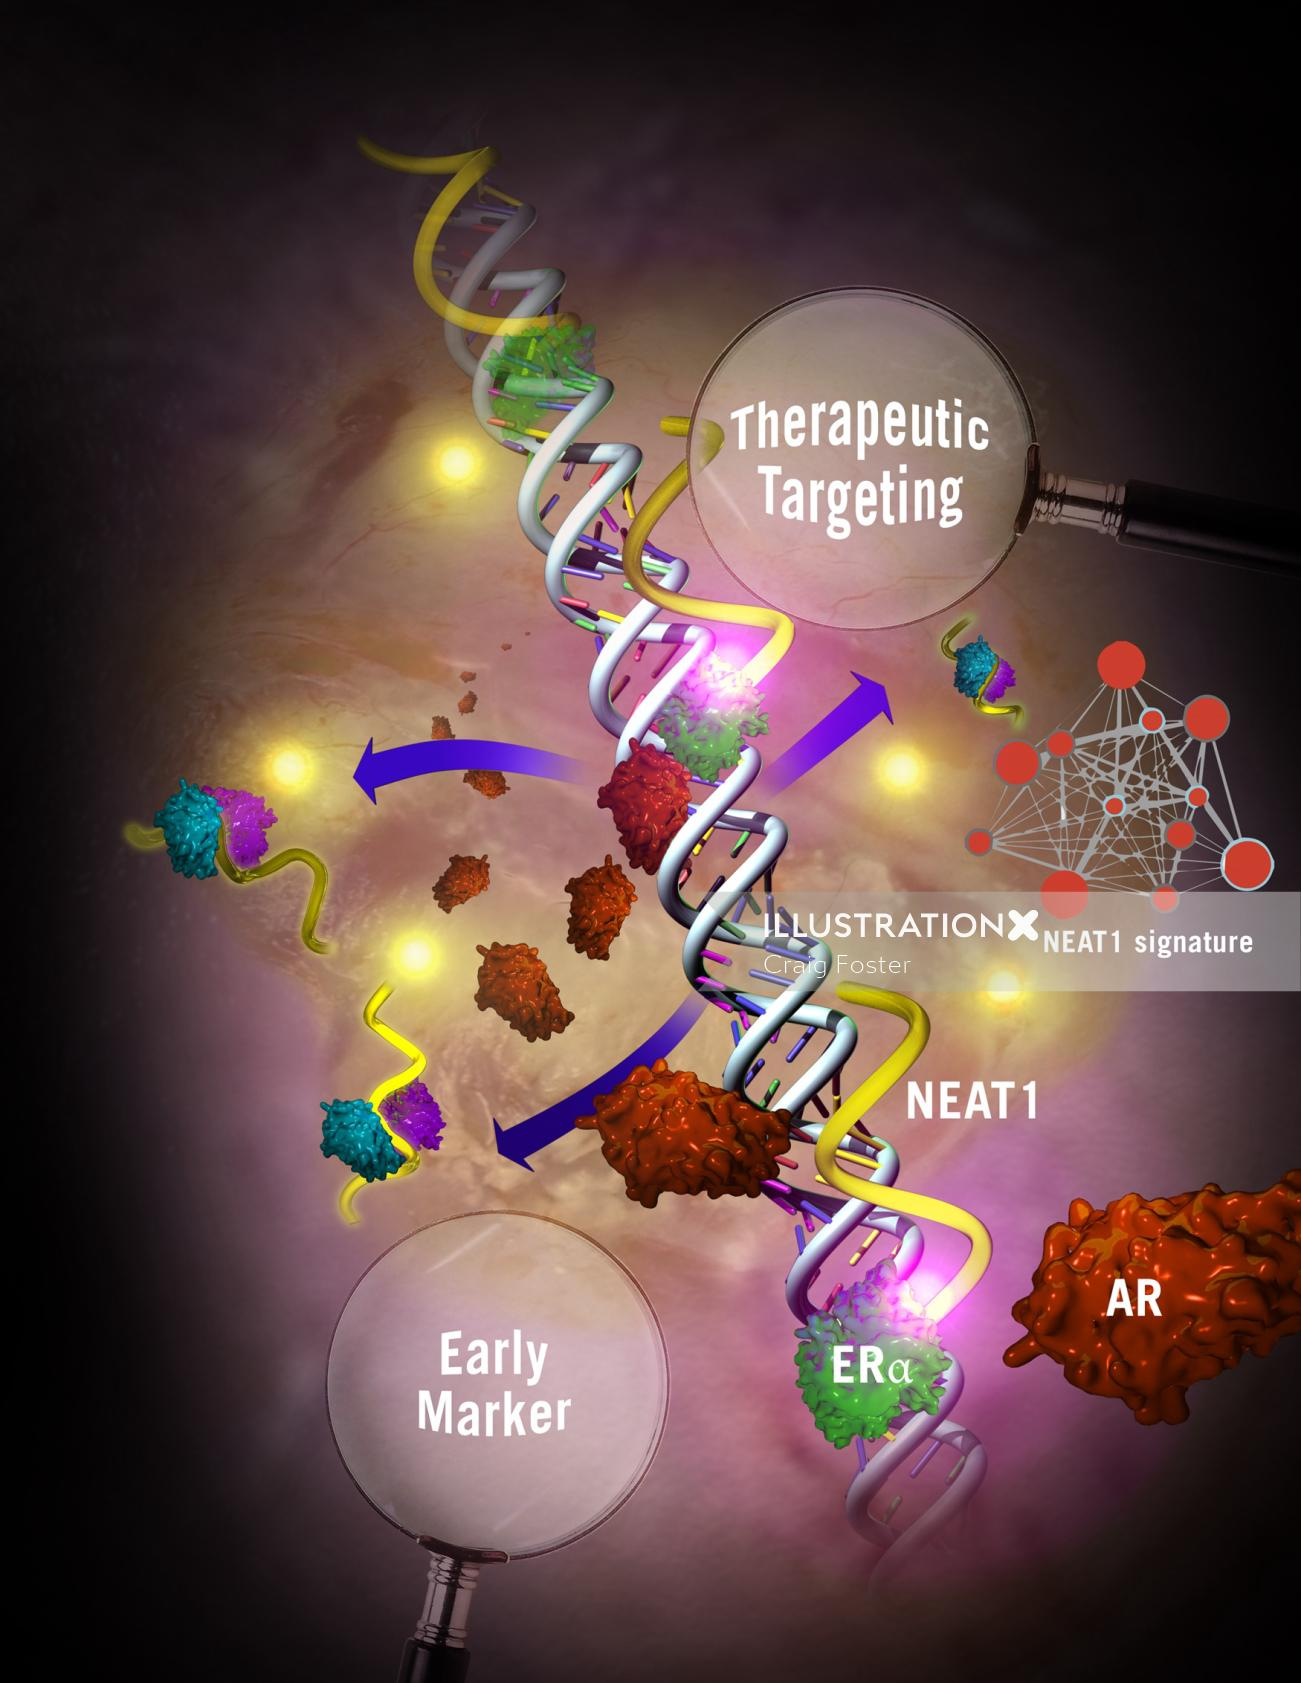 An illustration of therapeutic targeting hr